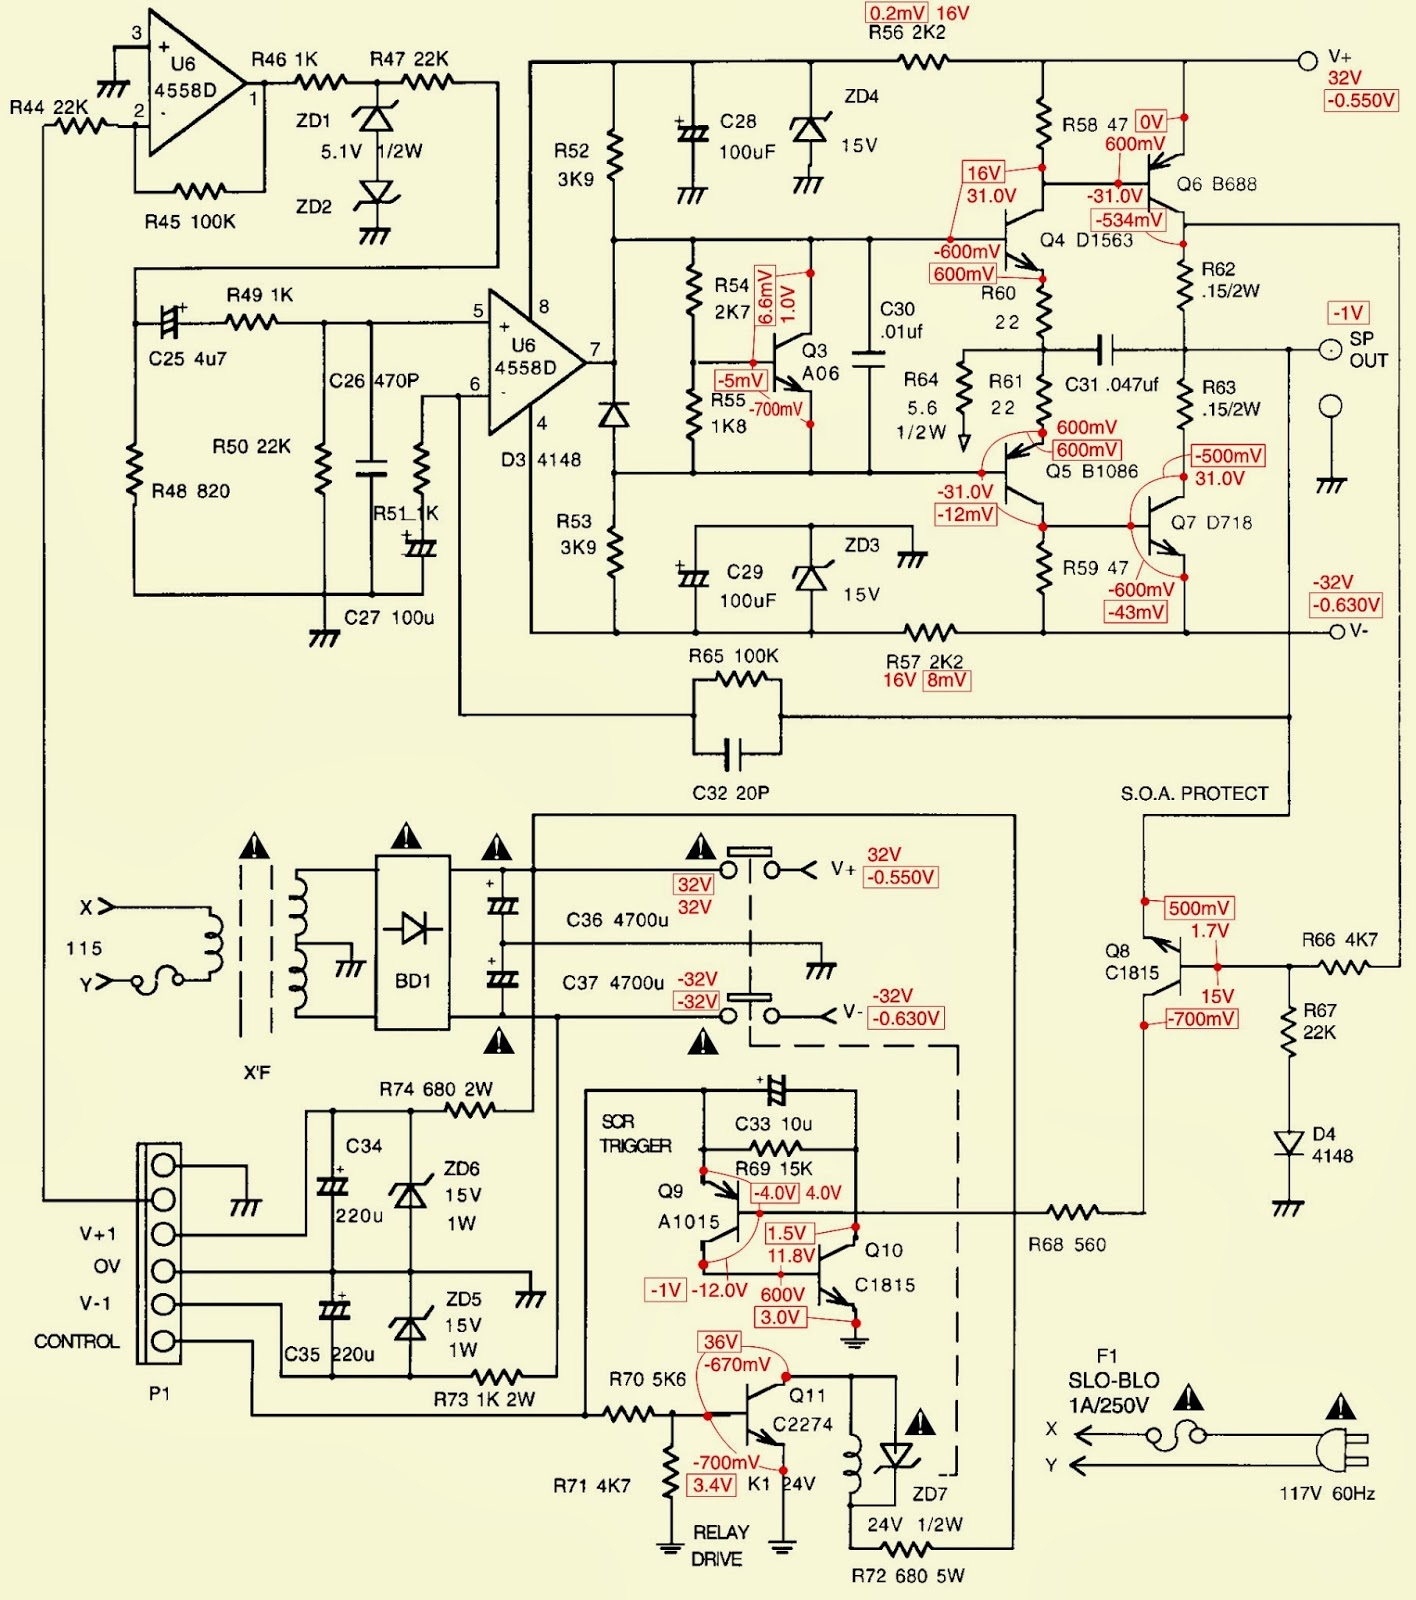 WRG-7916] Arc Wiring Diagram 3100 on